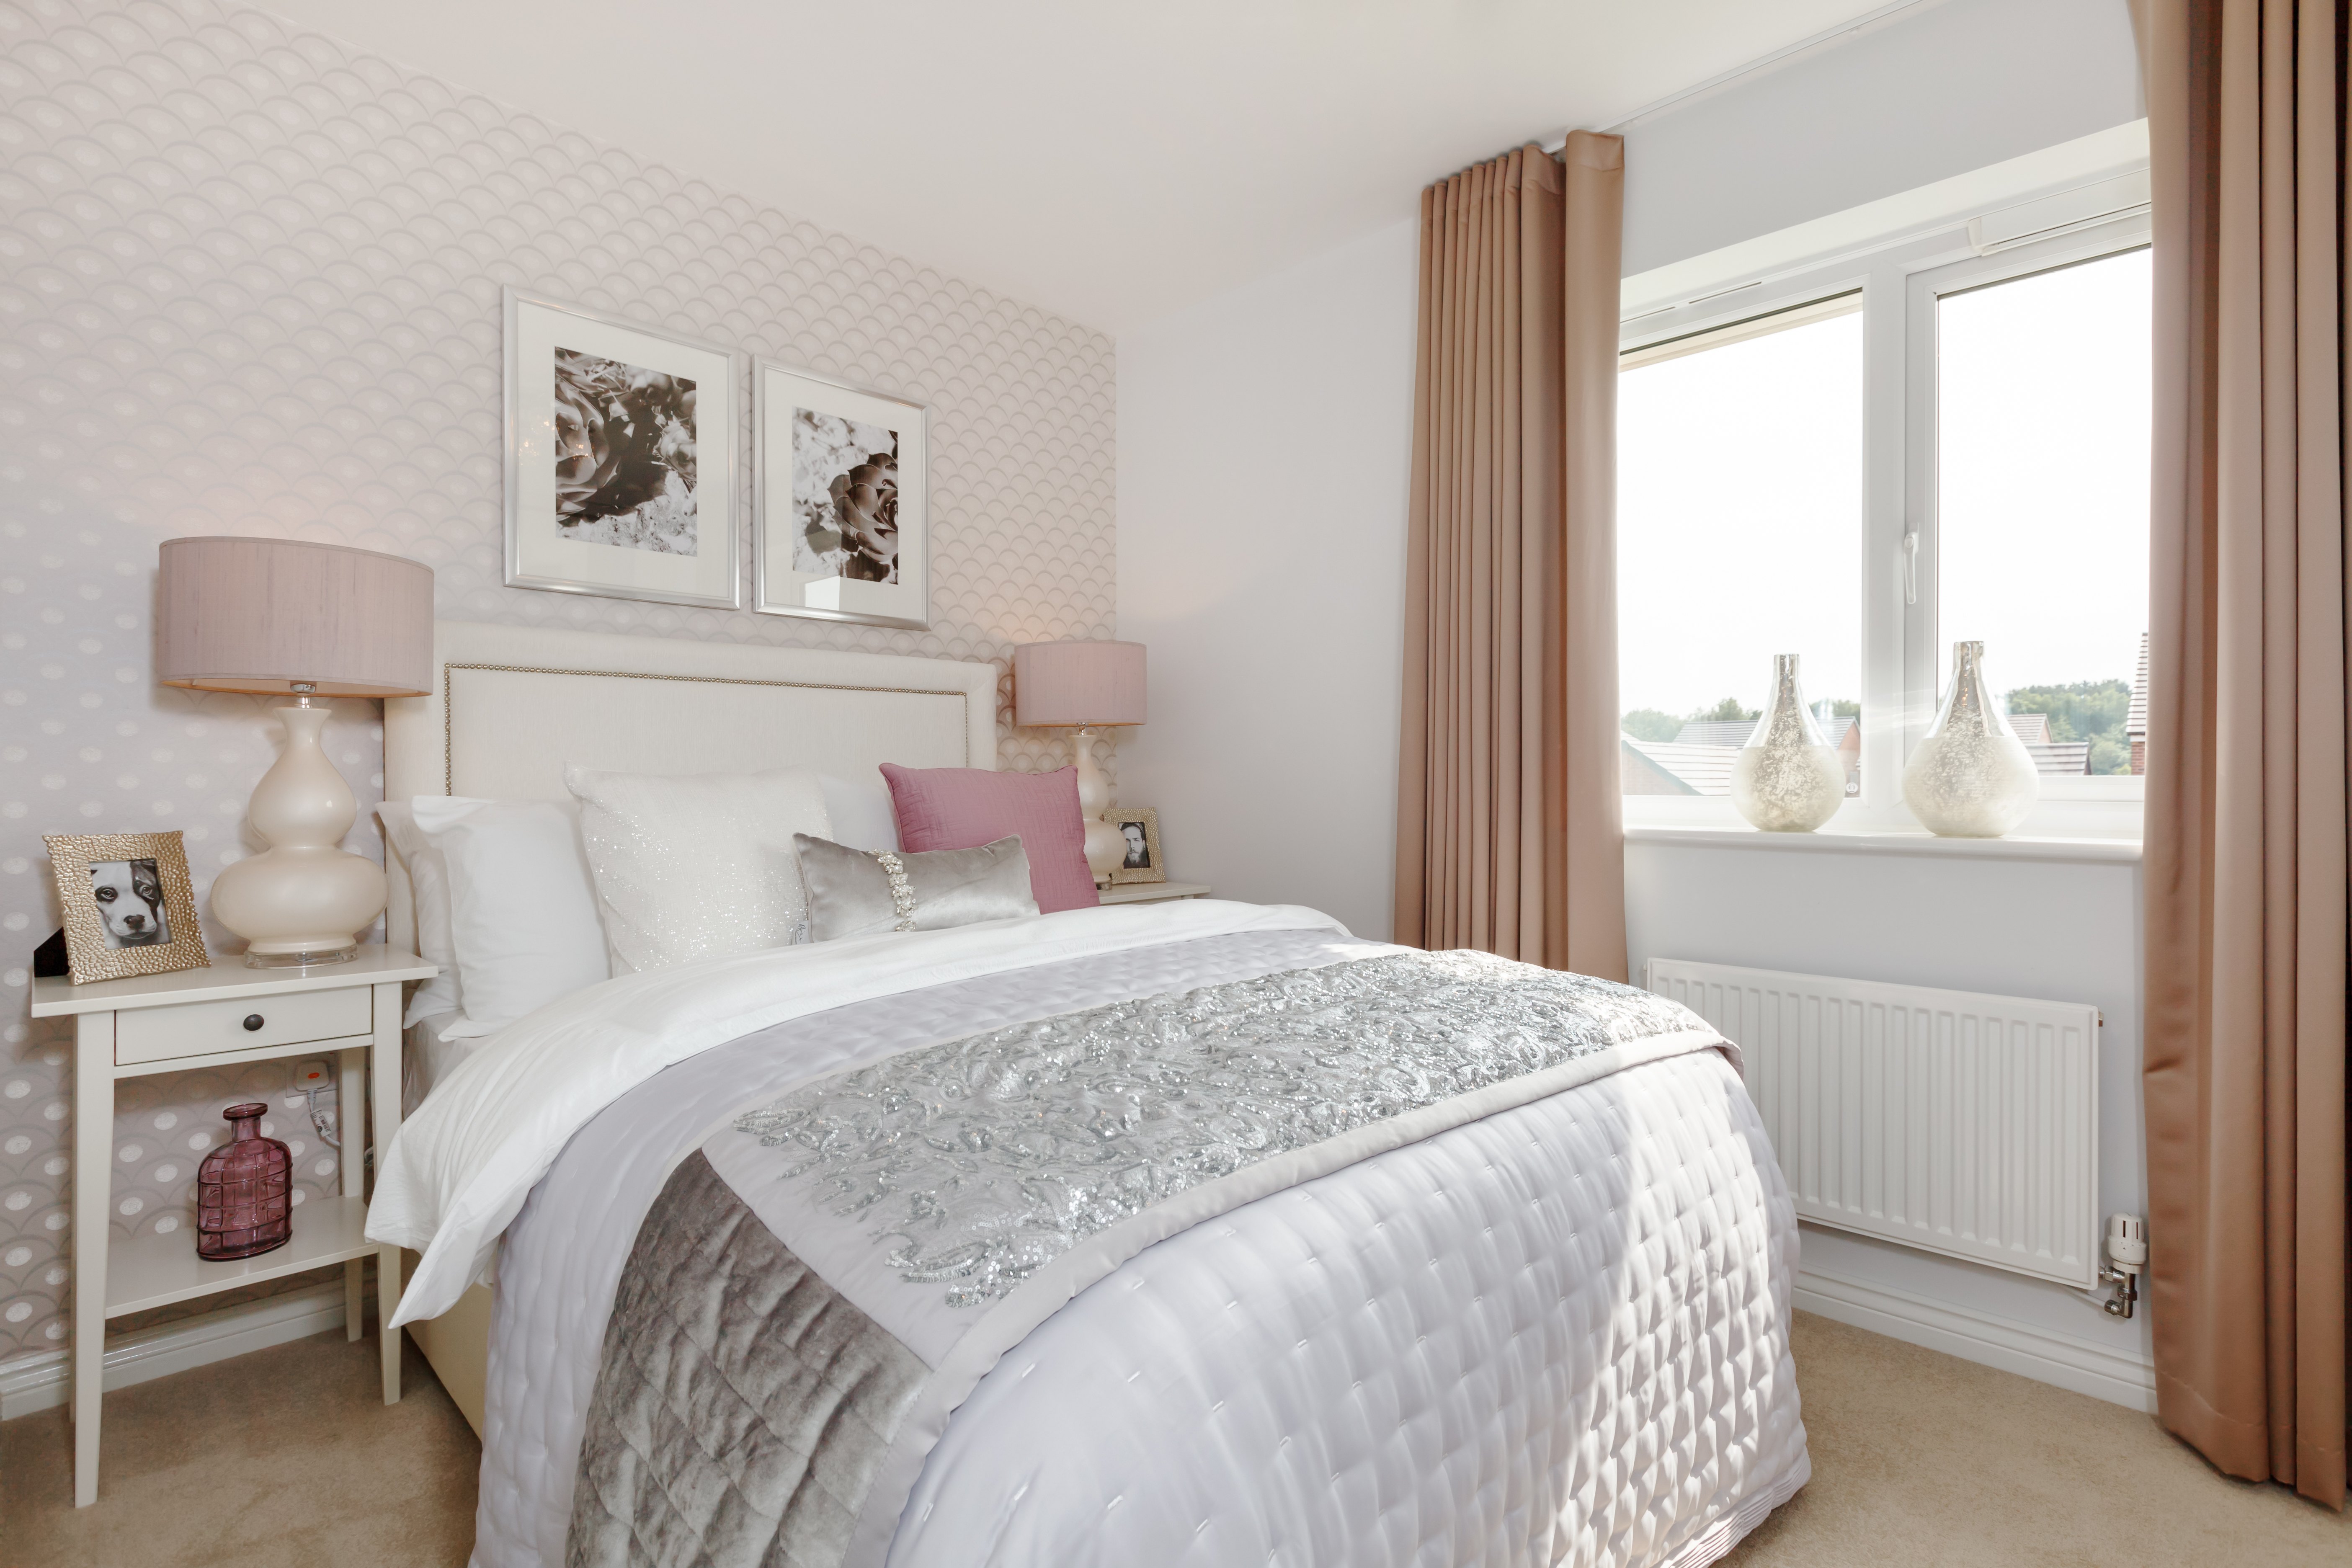 West Midlands - Burntwood Manor - Appleford Master Bedroom 1